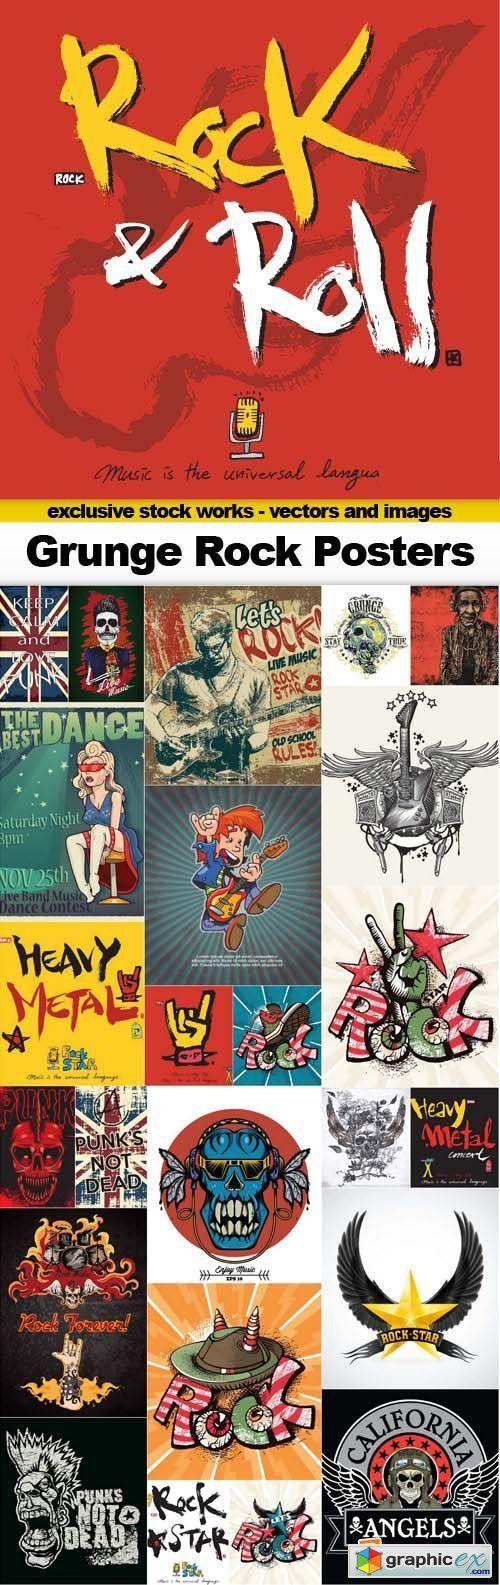 29 best t shirt designs images on pinterest t shirt designs grunge rock posters 25x eps gumiabroncs Images